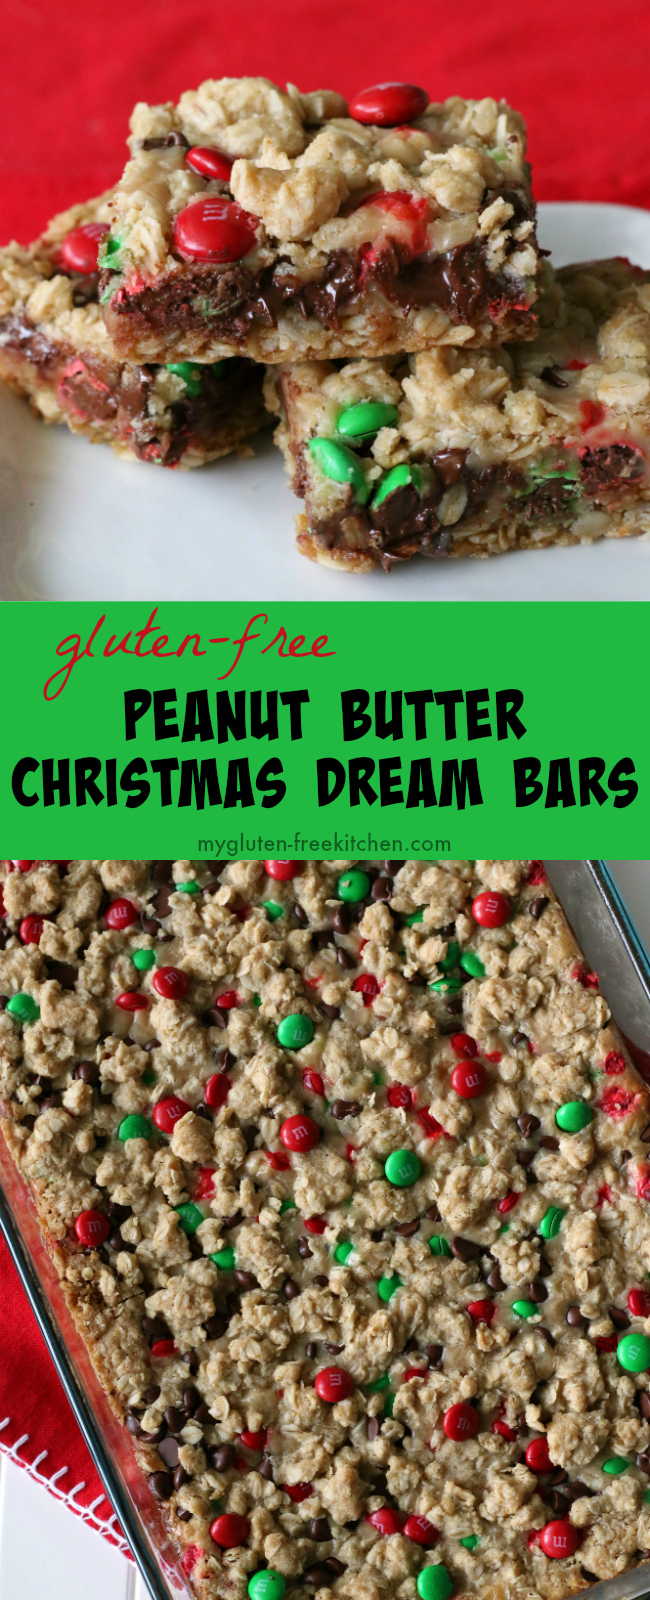 Gluten-free Peanut Butter Christmas Dream Bars recipe,